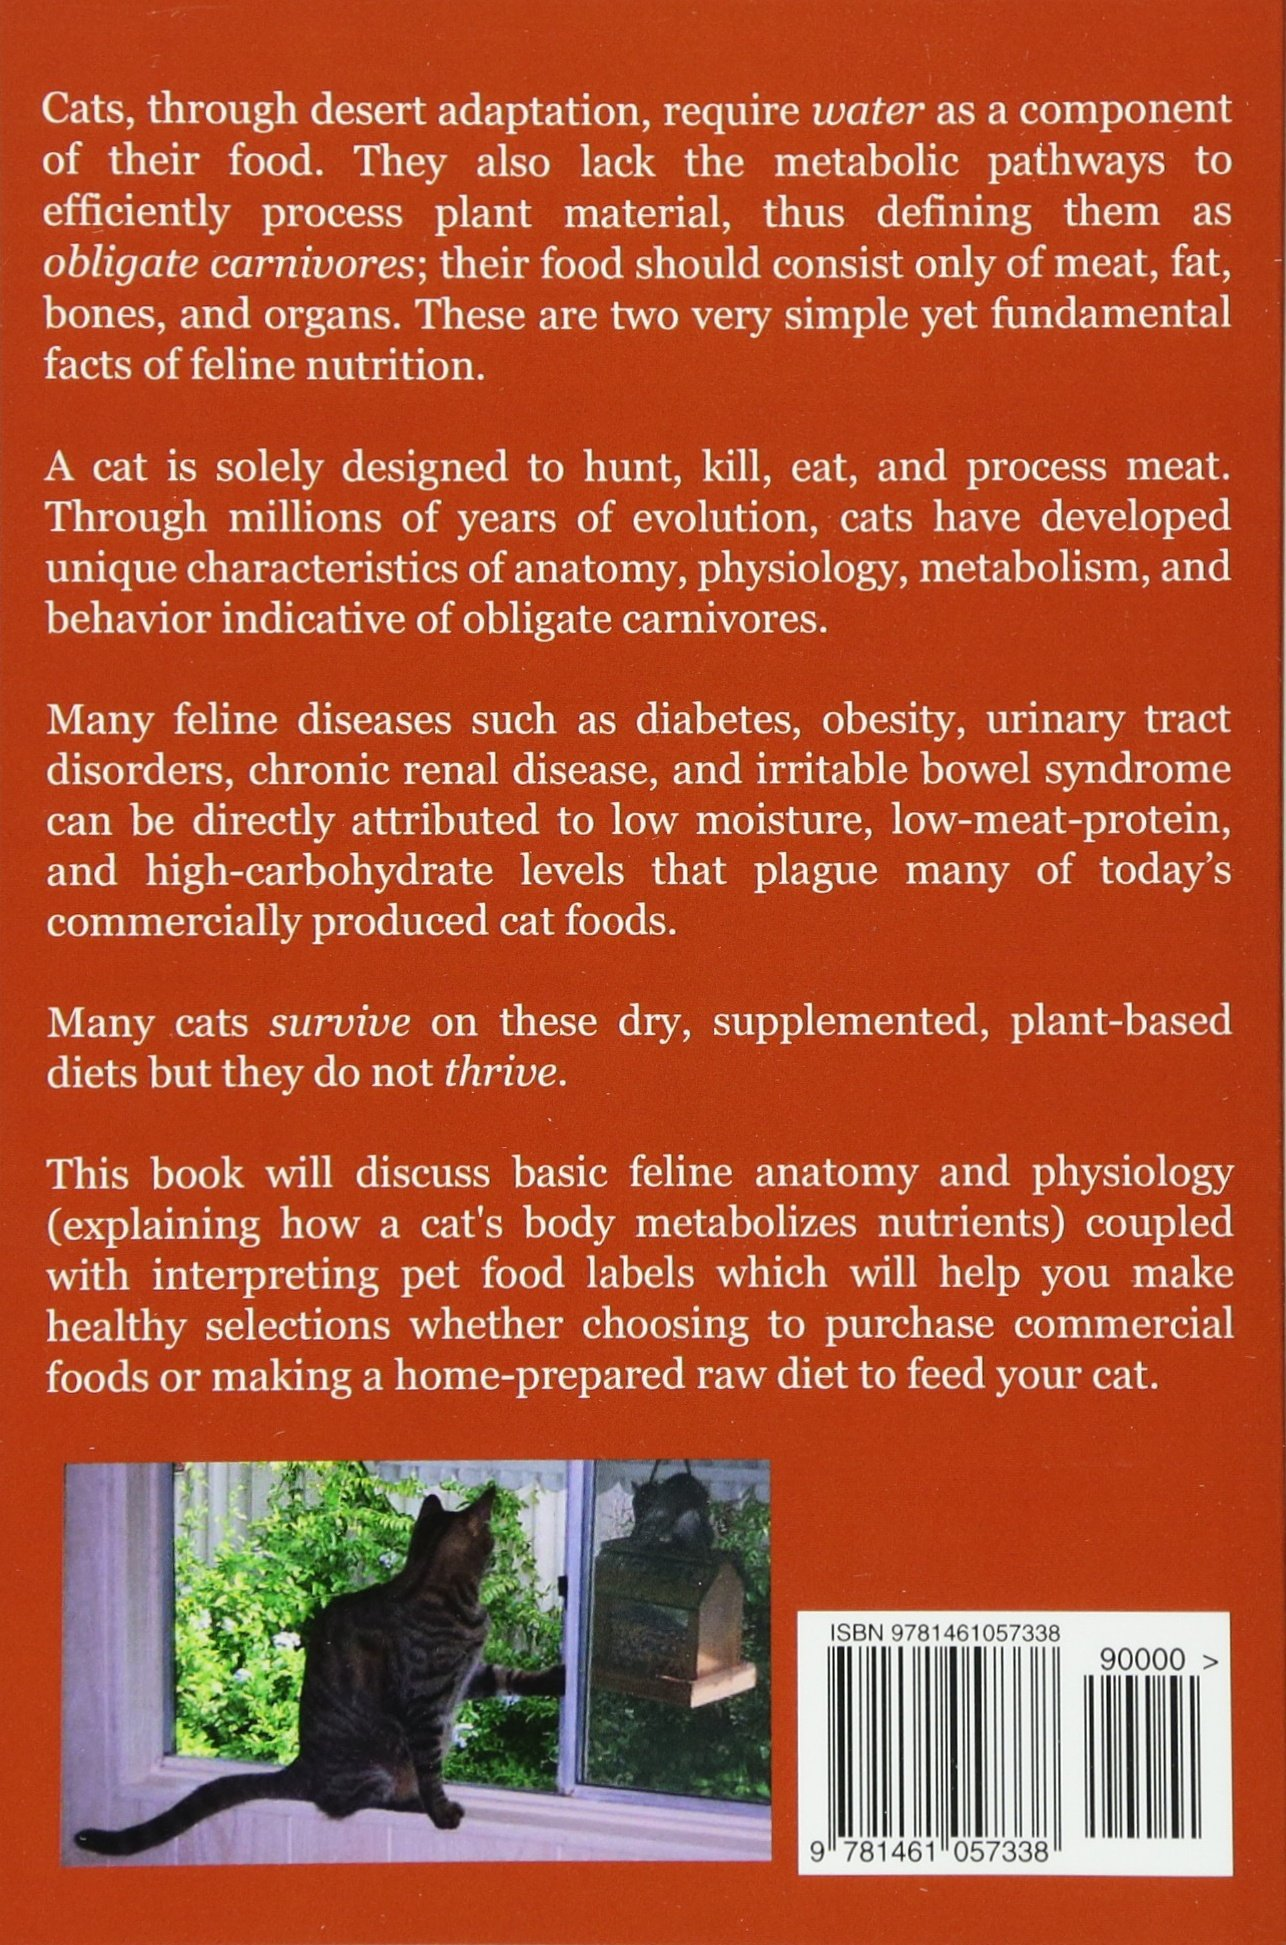 Feline Nutrition: Nutrition for the Optimum Health and Longevity of your Cat: Amazon.es: Lynn Curtis: Libros en idiomas extranjeros